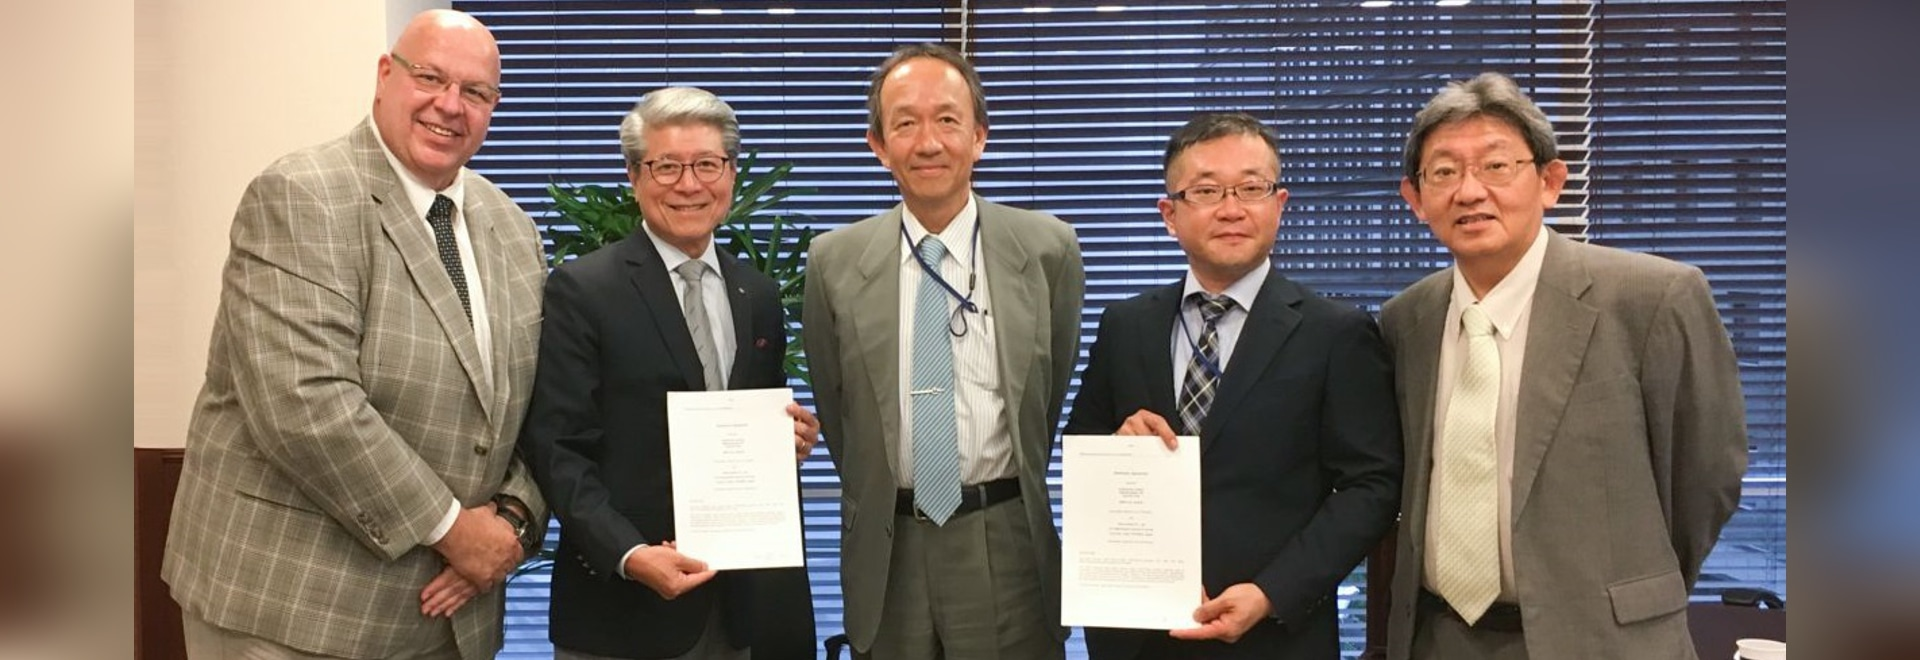 FerRobotics and  TAIHEI BOEKI Co. Ltd signing distributor agreement for Jaoan